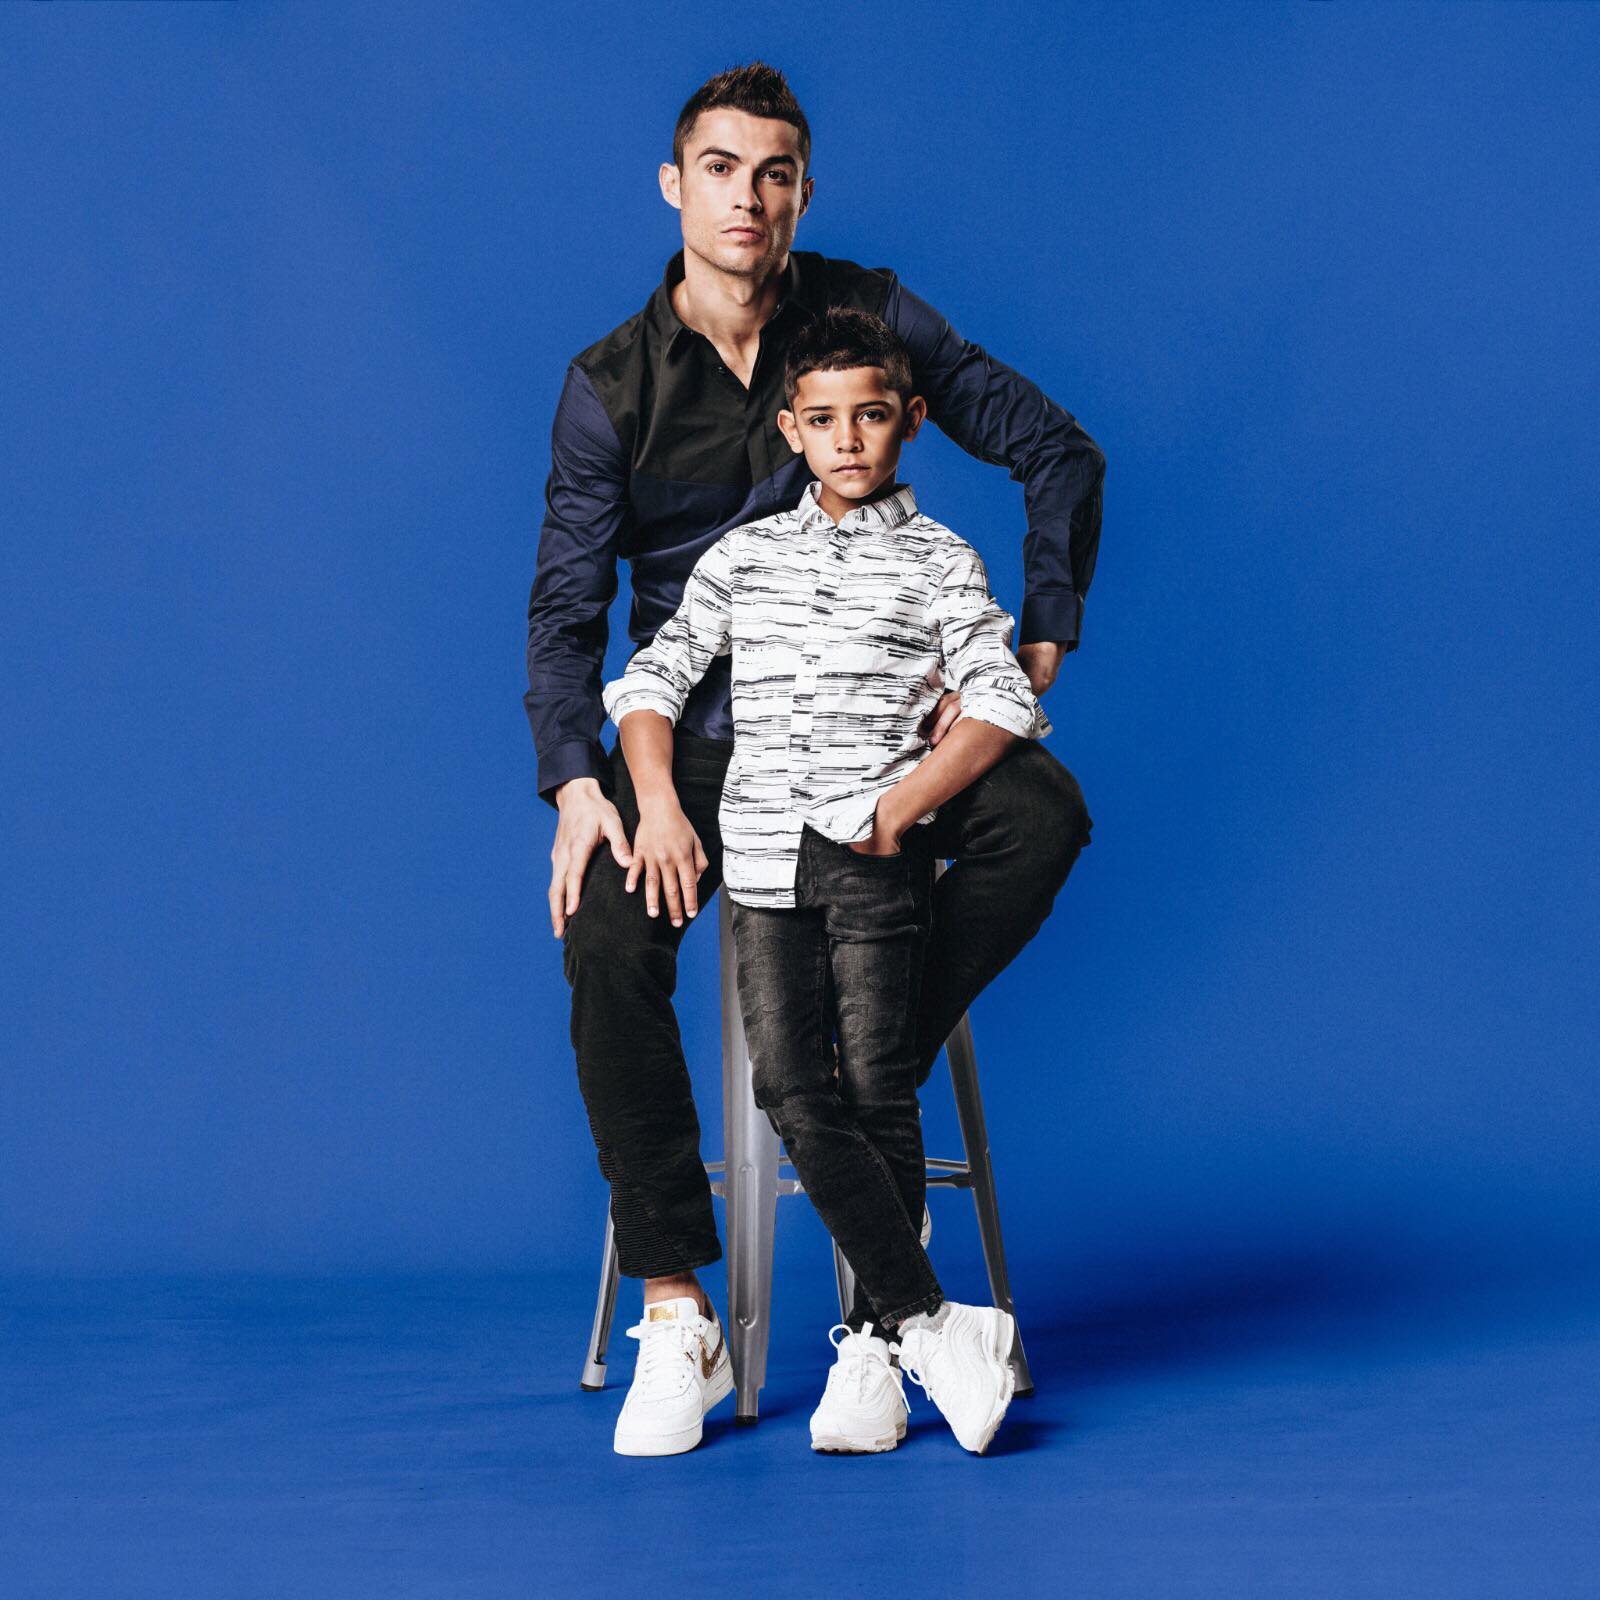 Me and my boy �� Rocking our @cr7limitless & @cr7junior gear | https://t.co/rIL6OxcBQk #CR7Denim #CR7Jeans #CR7Squad https://t.co/wGuGCAP2mg